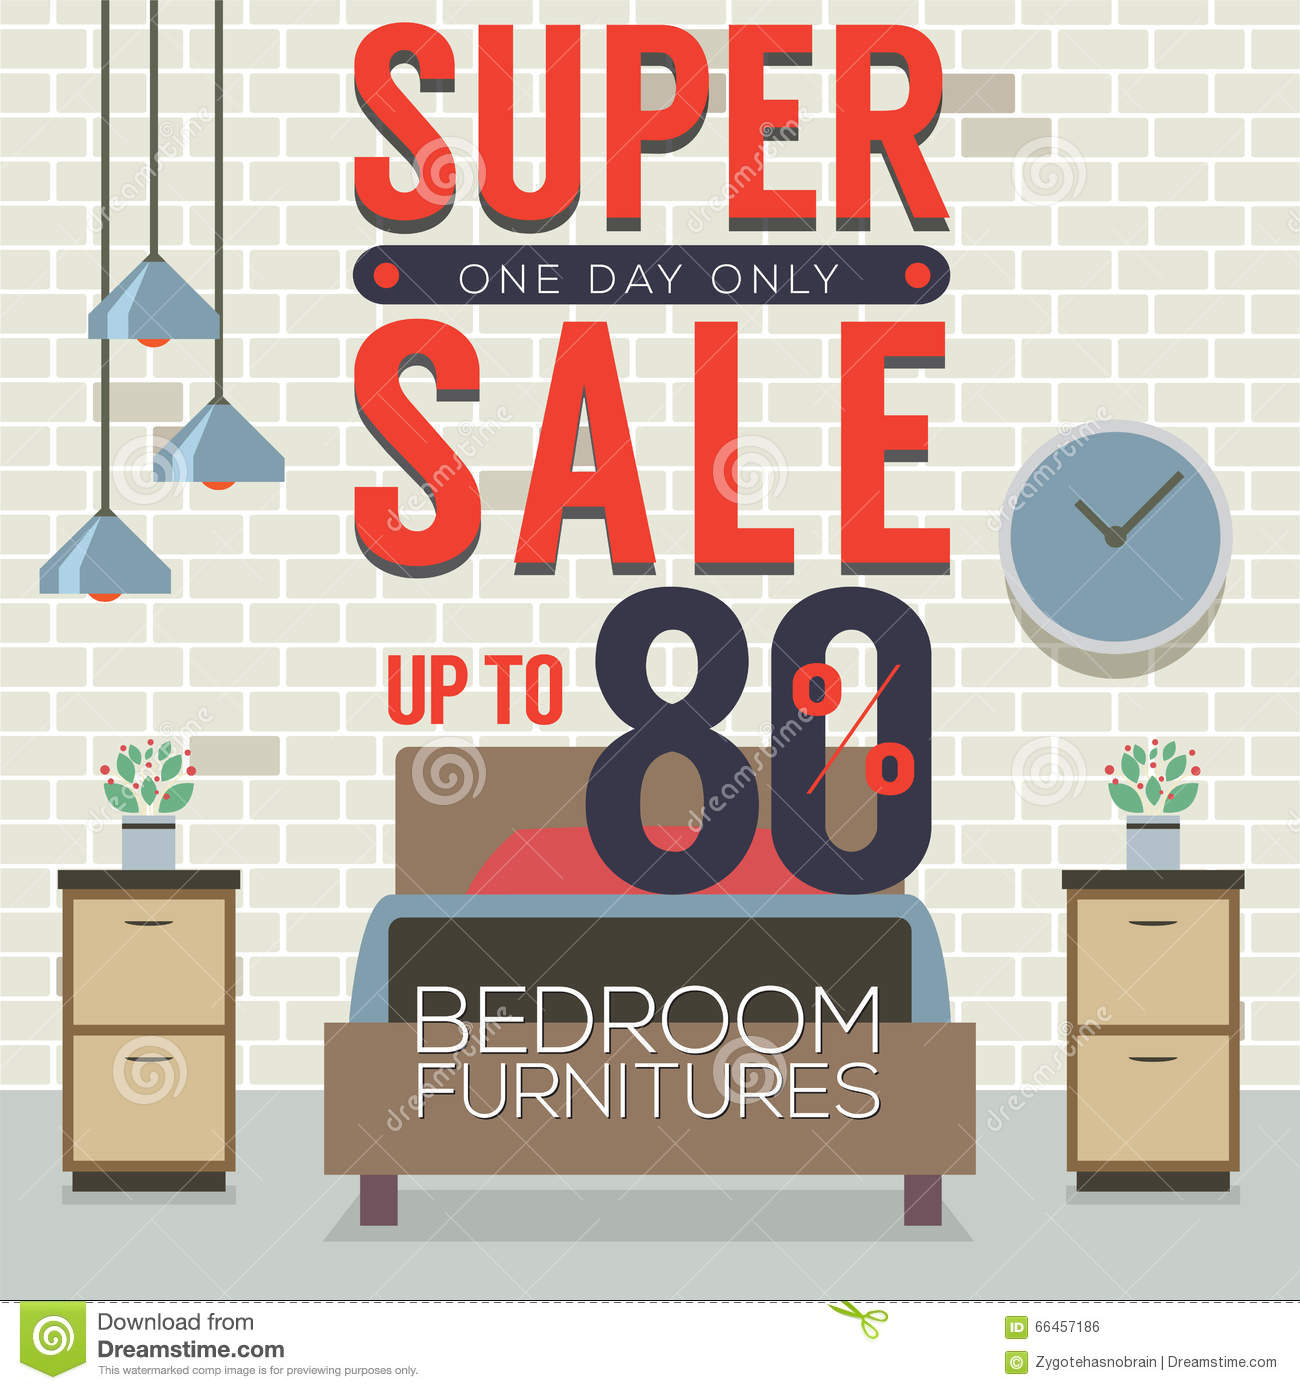 Furniture super sale up to 80 percent